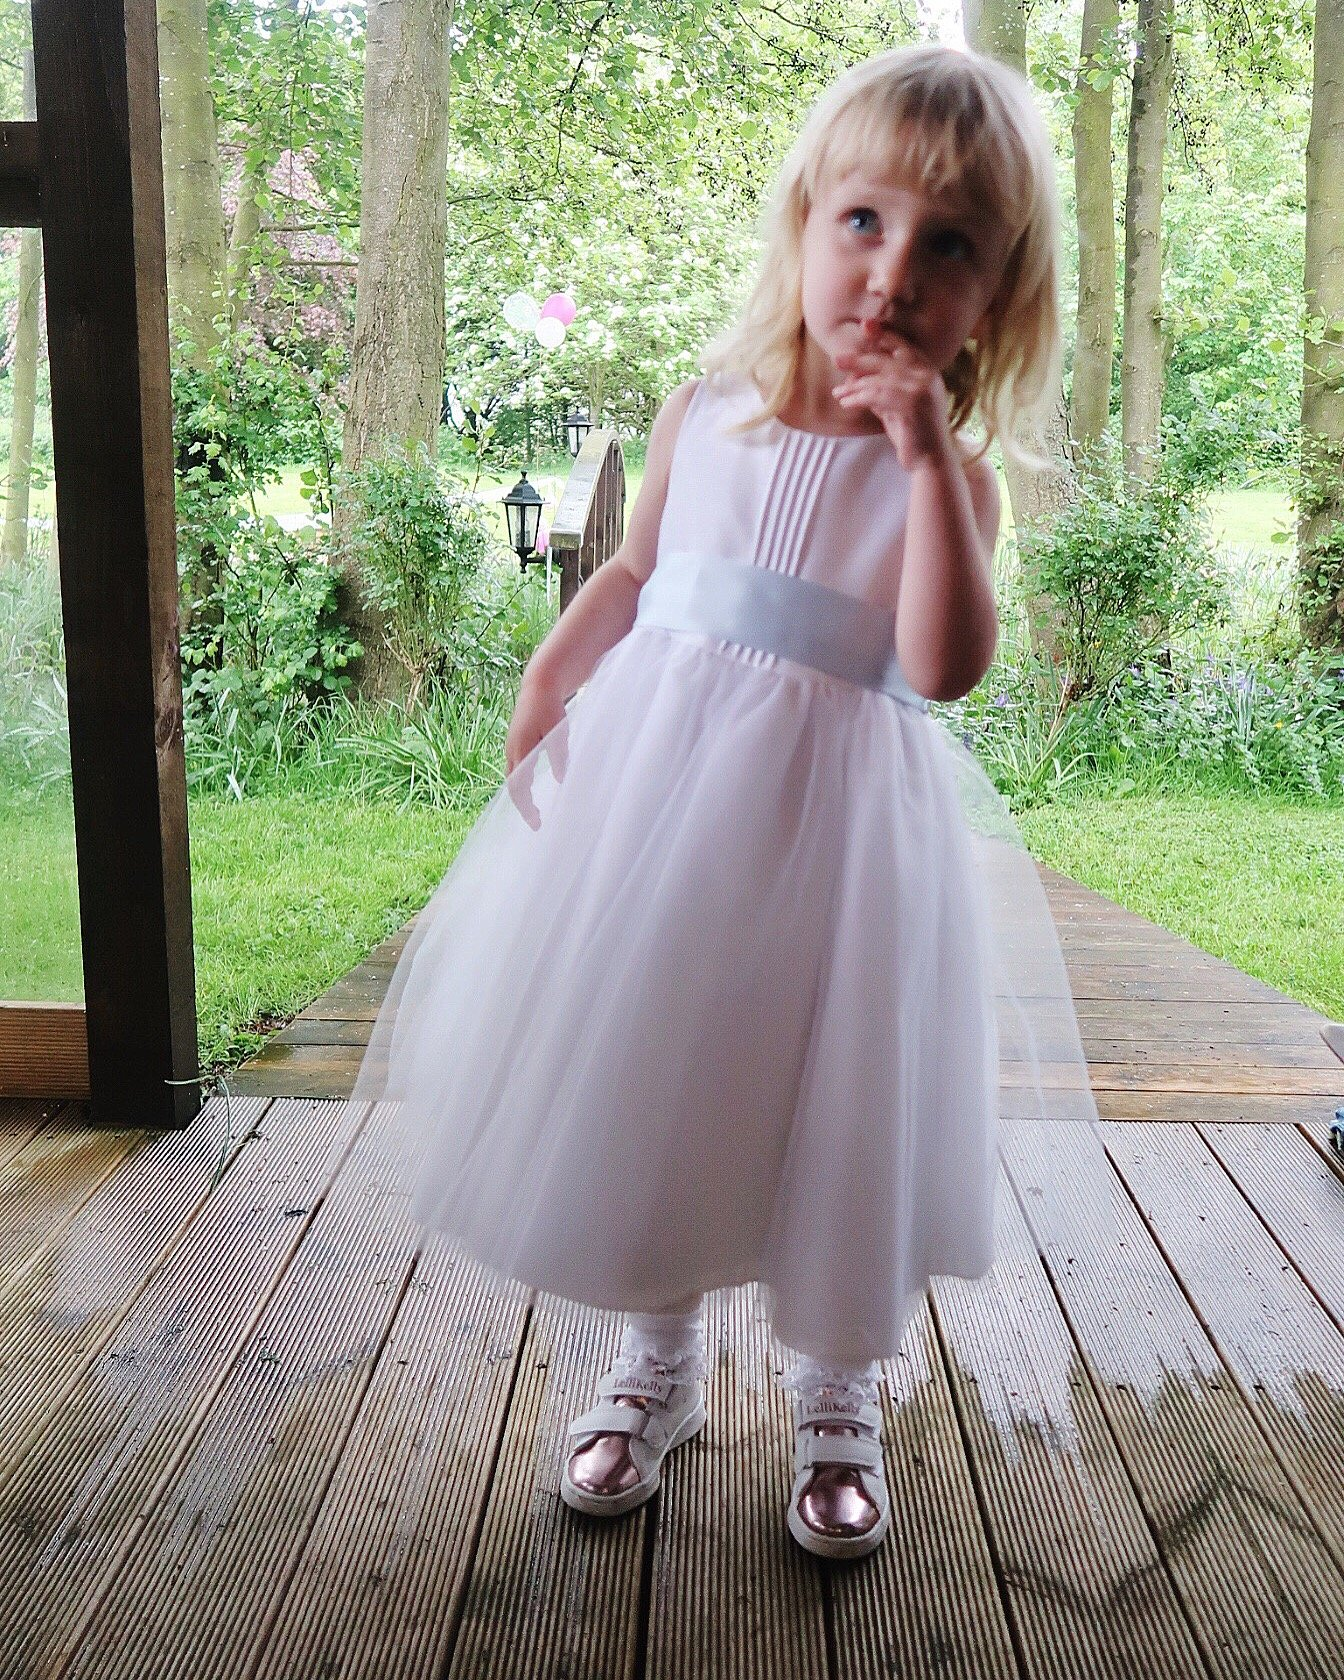 11 tips for taking a toddler to a wedding